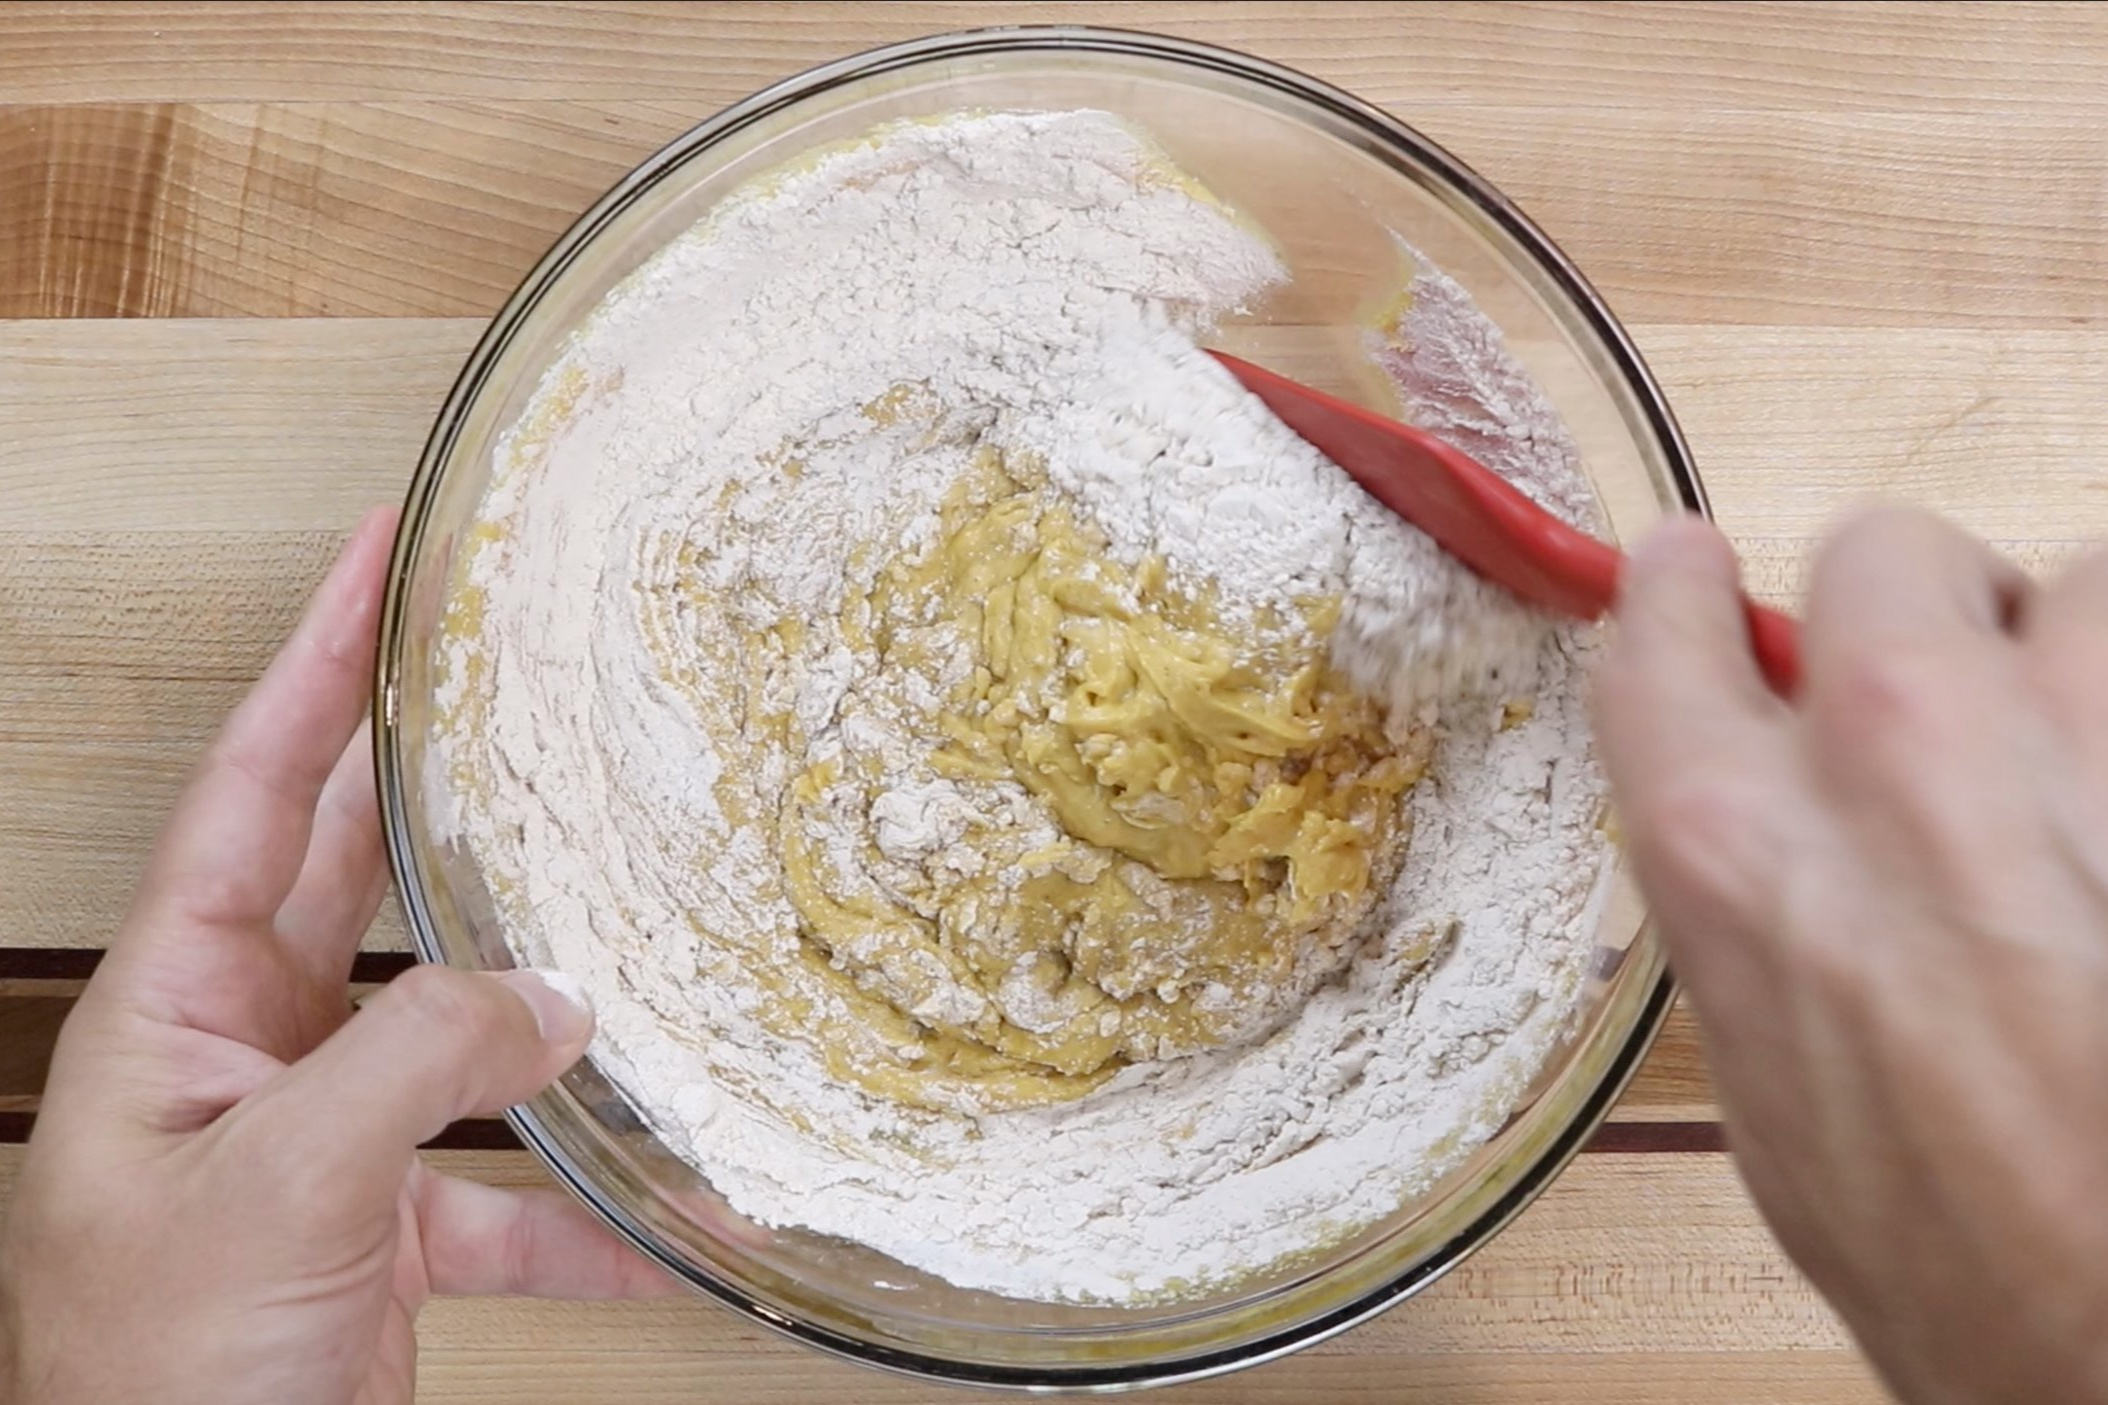 6. Stir in the remailing flour with a spatula until just combined. Dough will be very soft and sticky. -